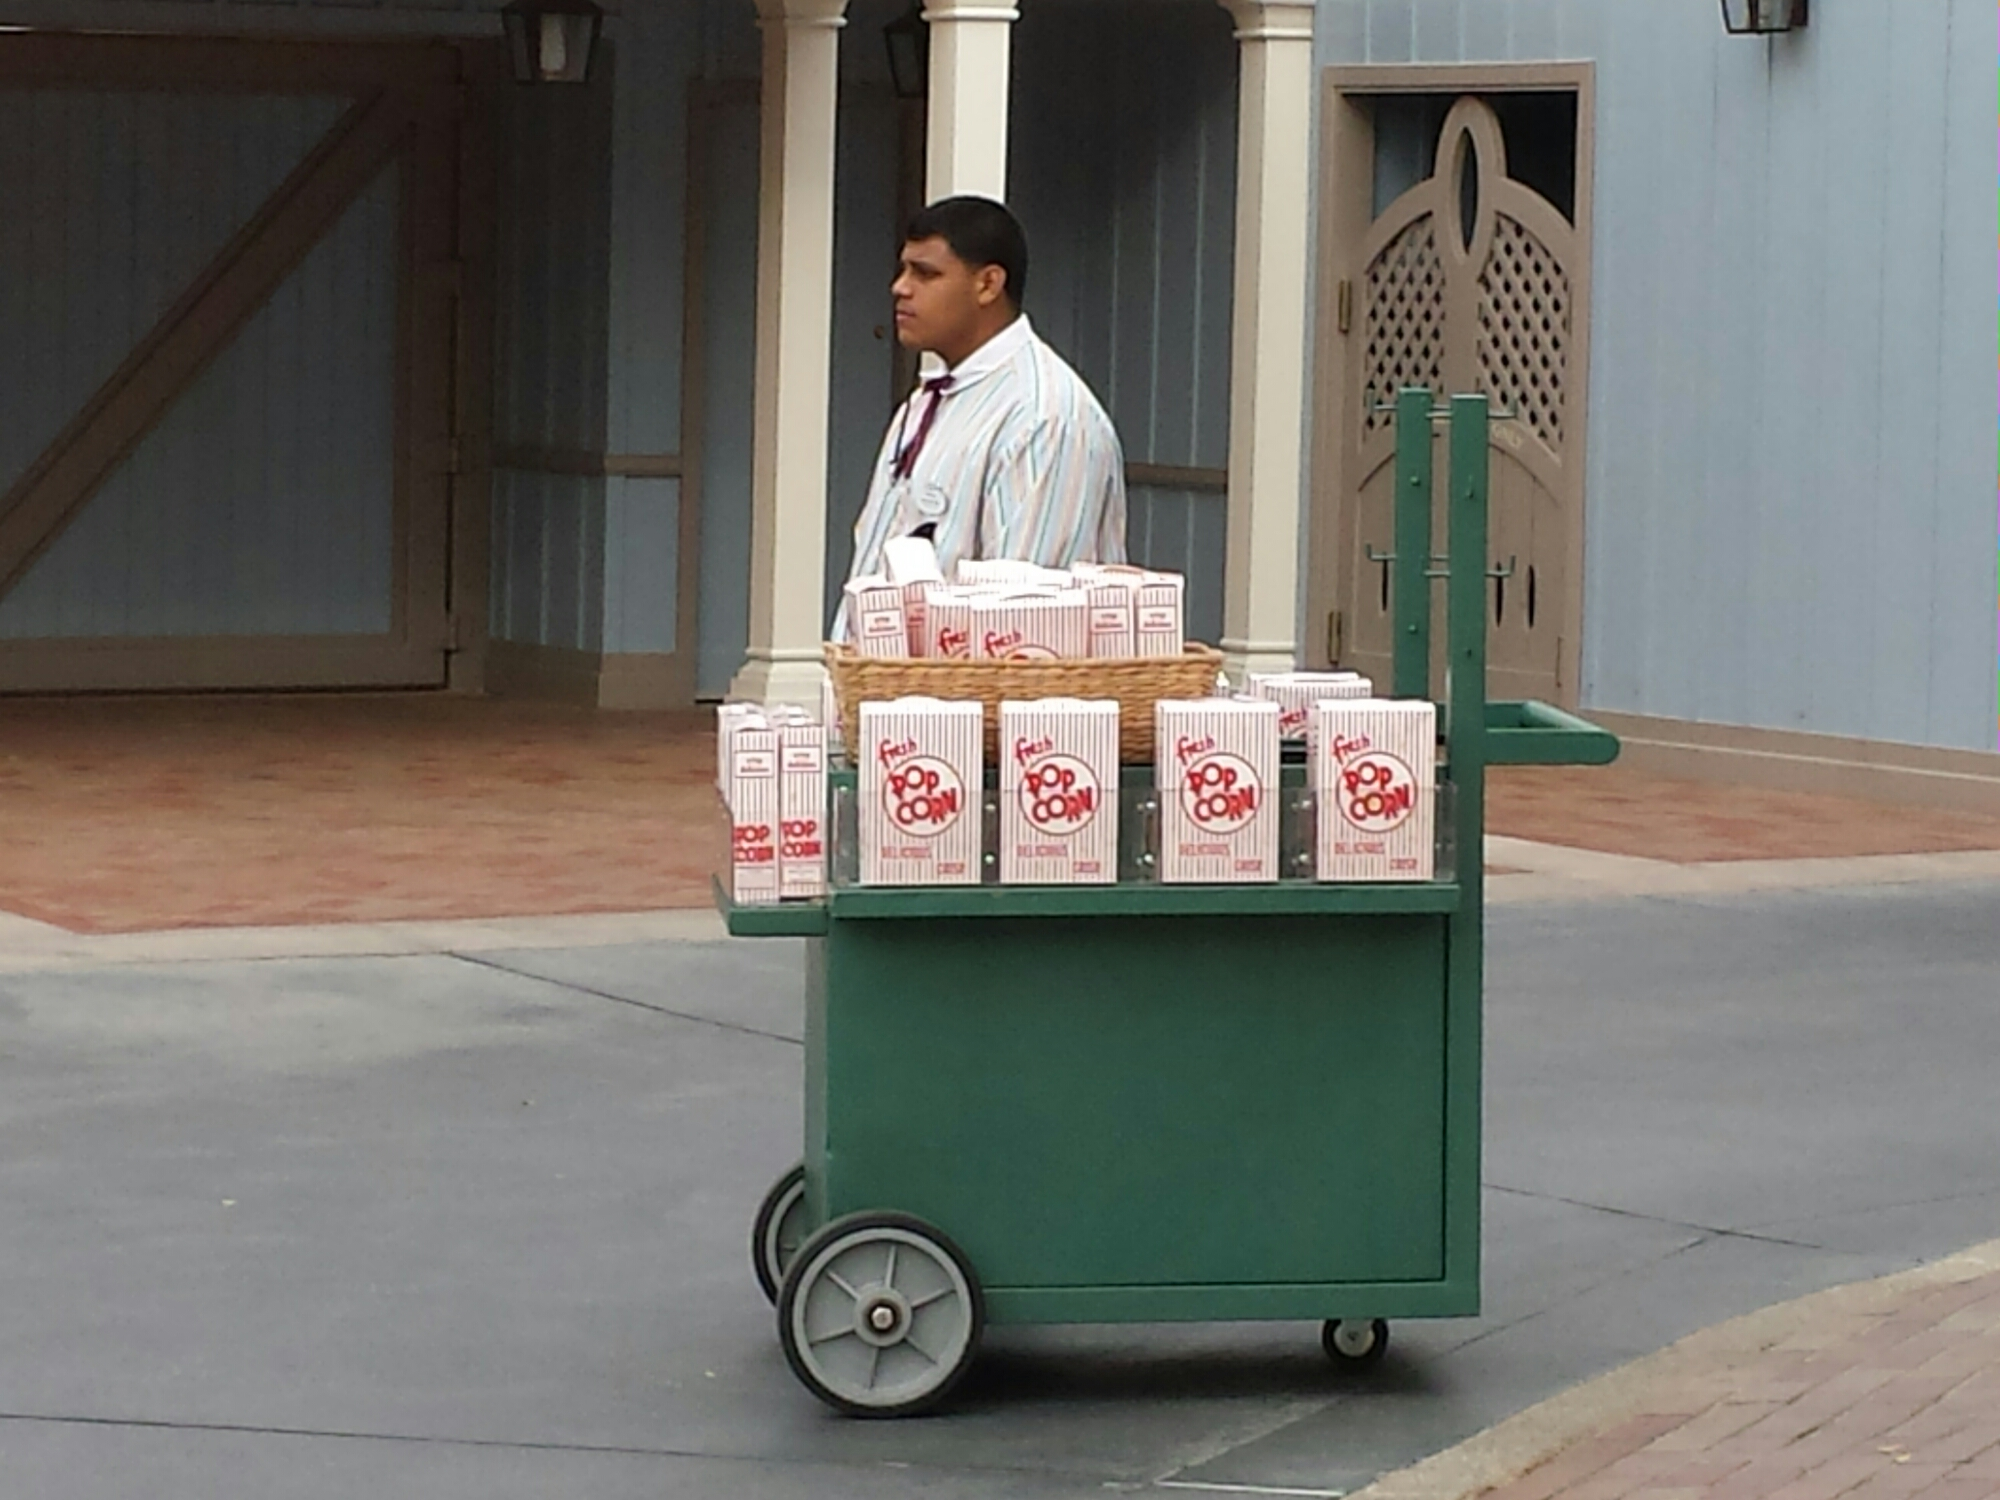 A new popcorn cart on Main Street USA?  $4.25 a box #Disneyland